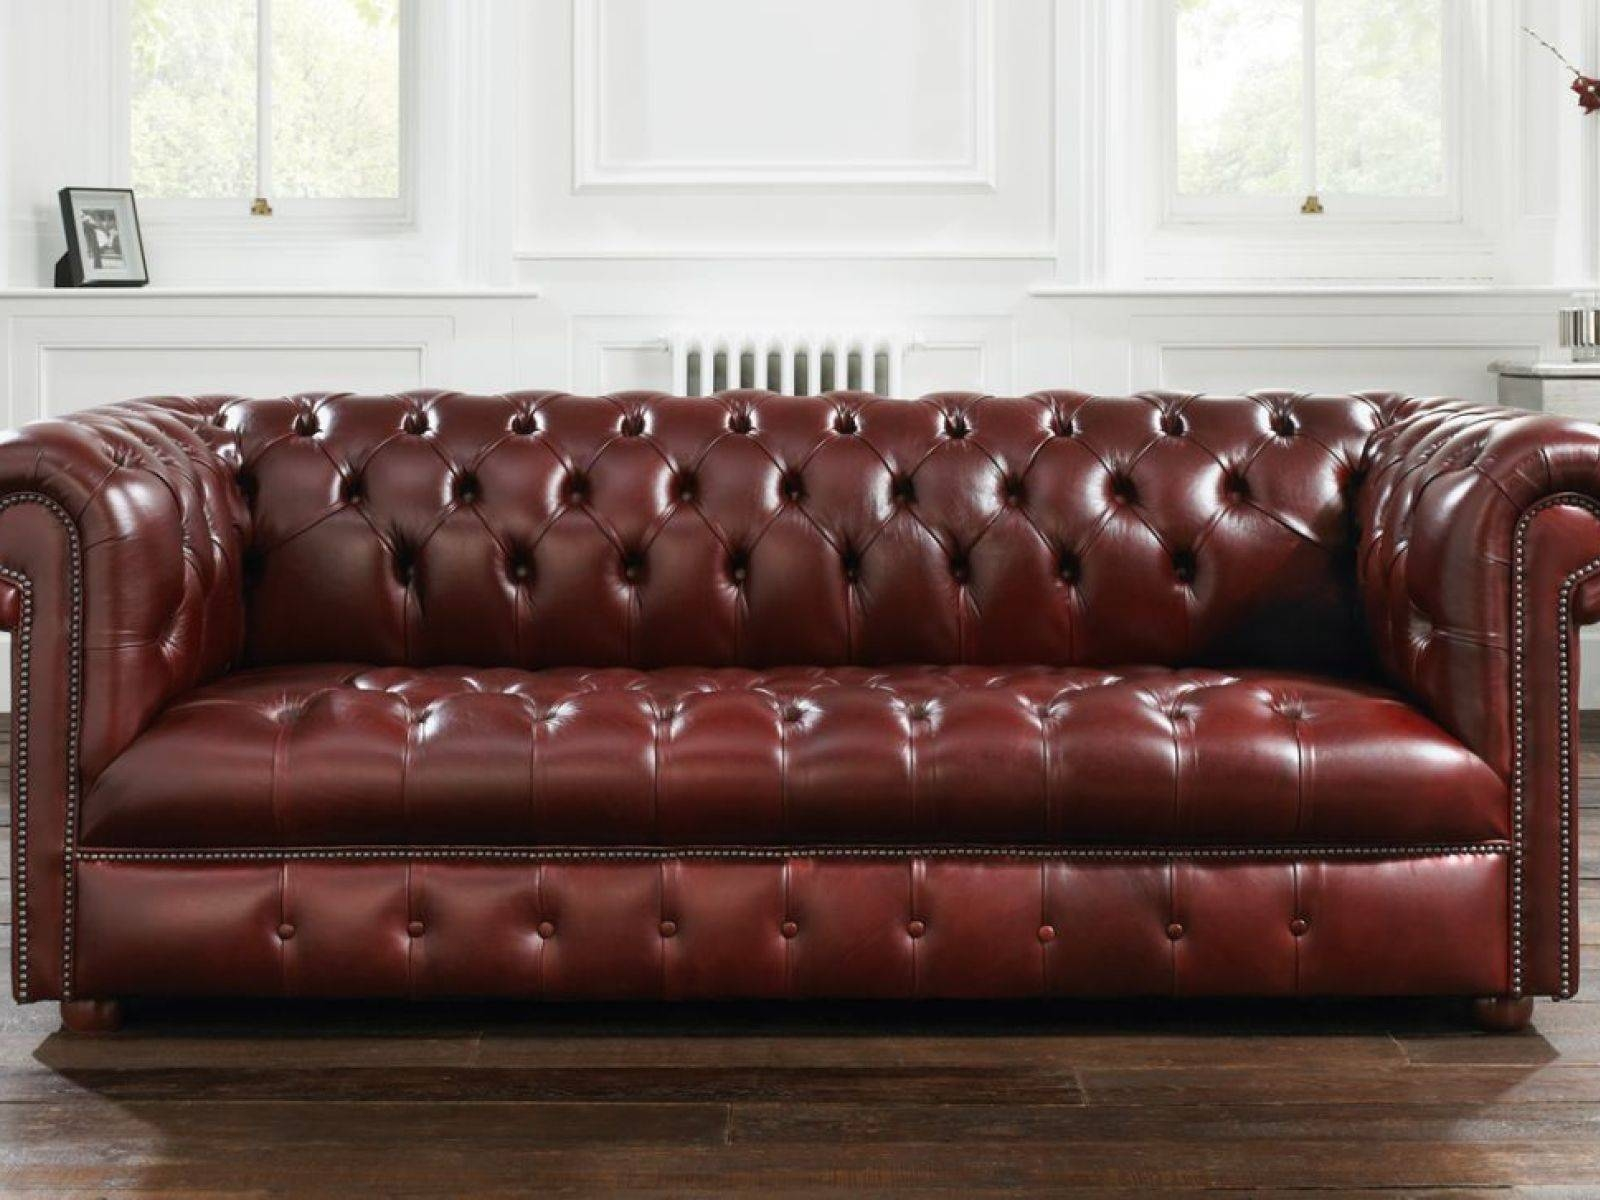 ▻ Sofa : 4 Lovely Chesterfield Sofa In Square As Gorgeous Black with regard to Tufted Leather Chesterfield Sofas (Image 30 of 30)